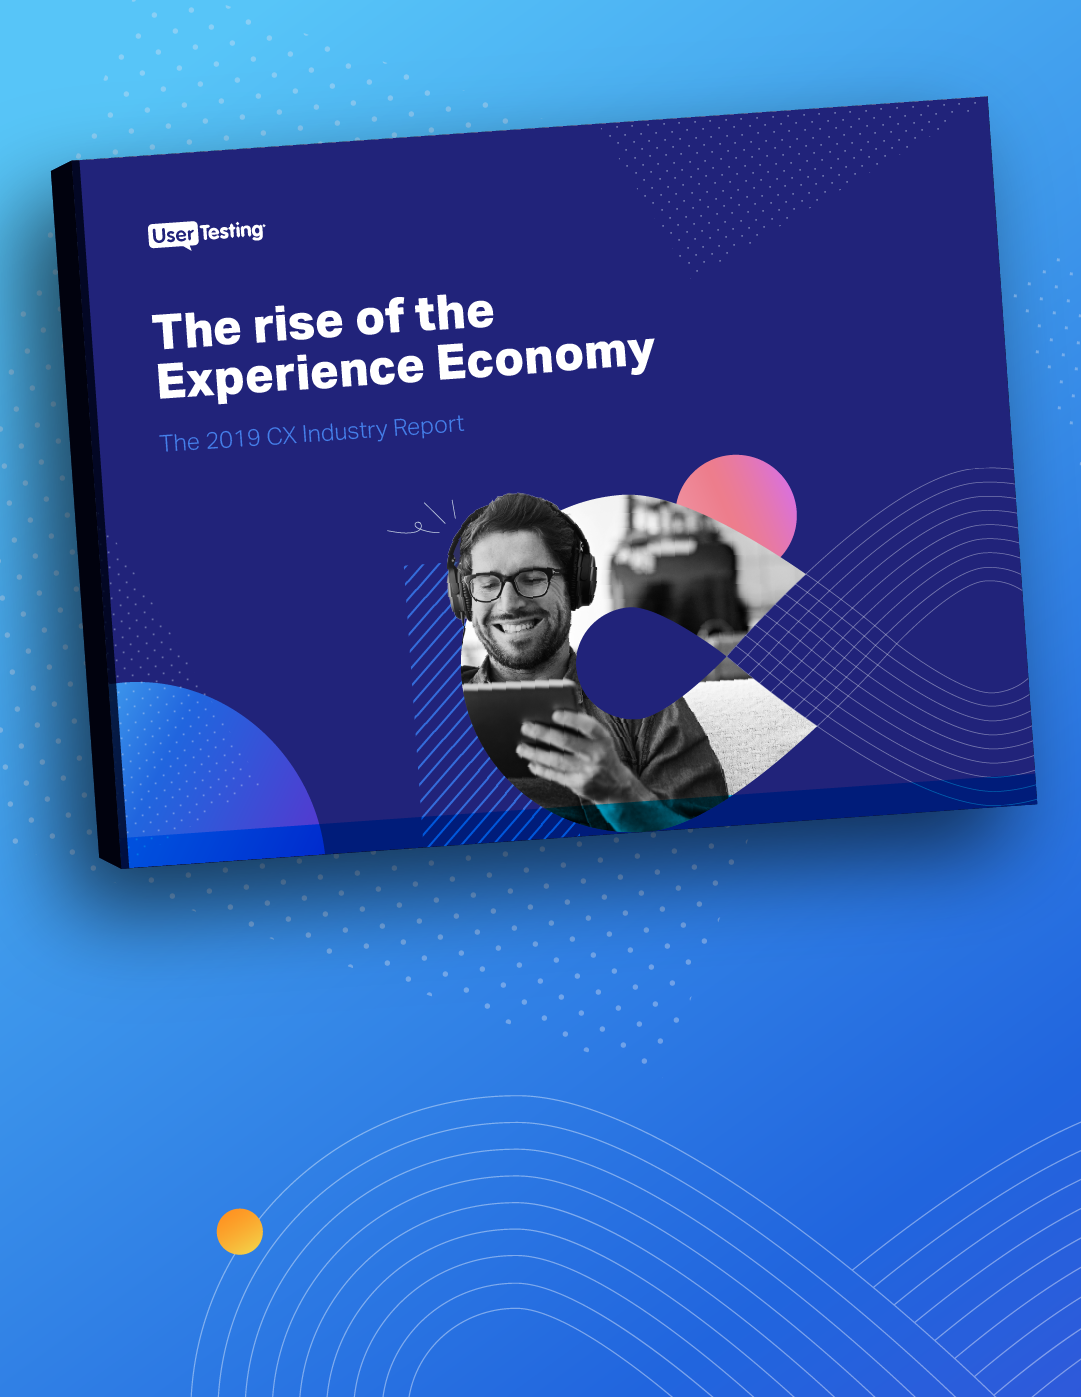 The rise of the Experience Economy: the 2019 CX Industry Report